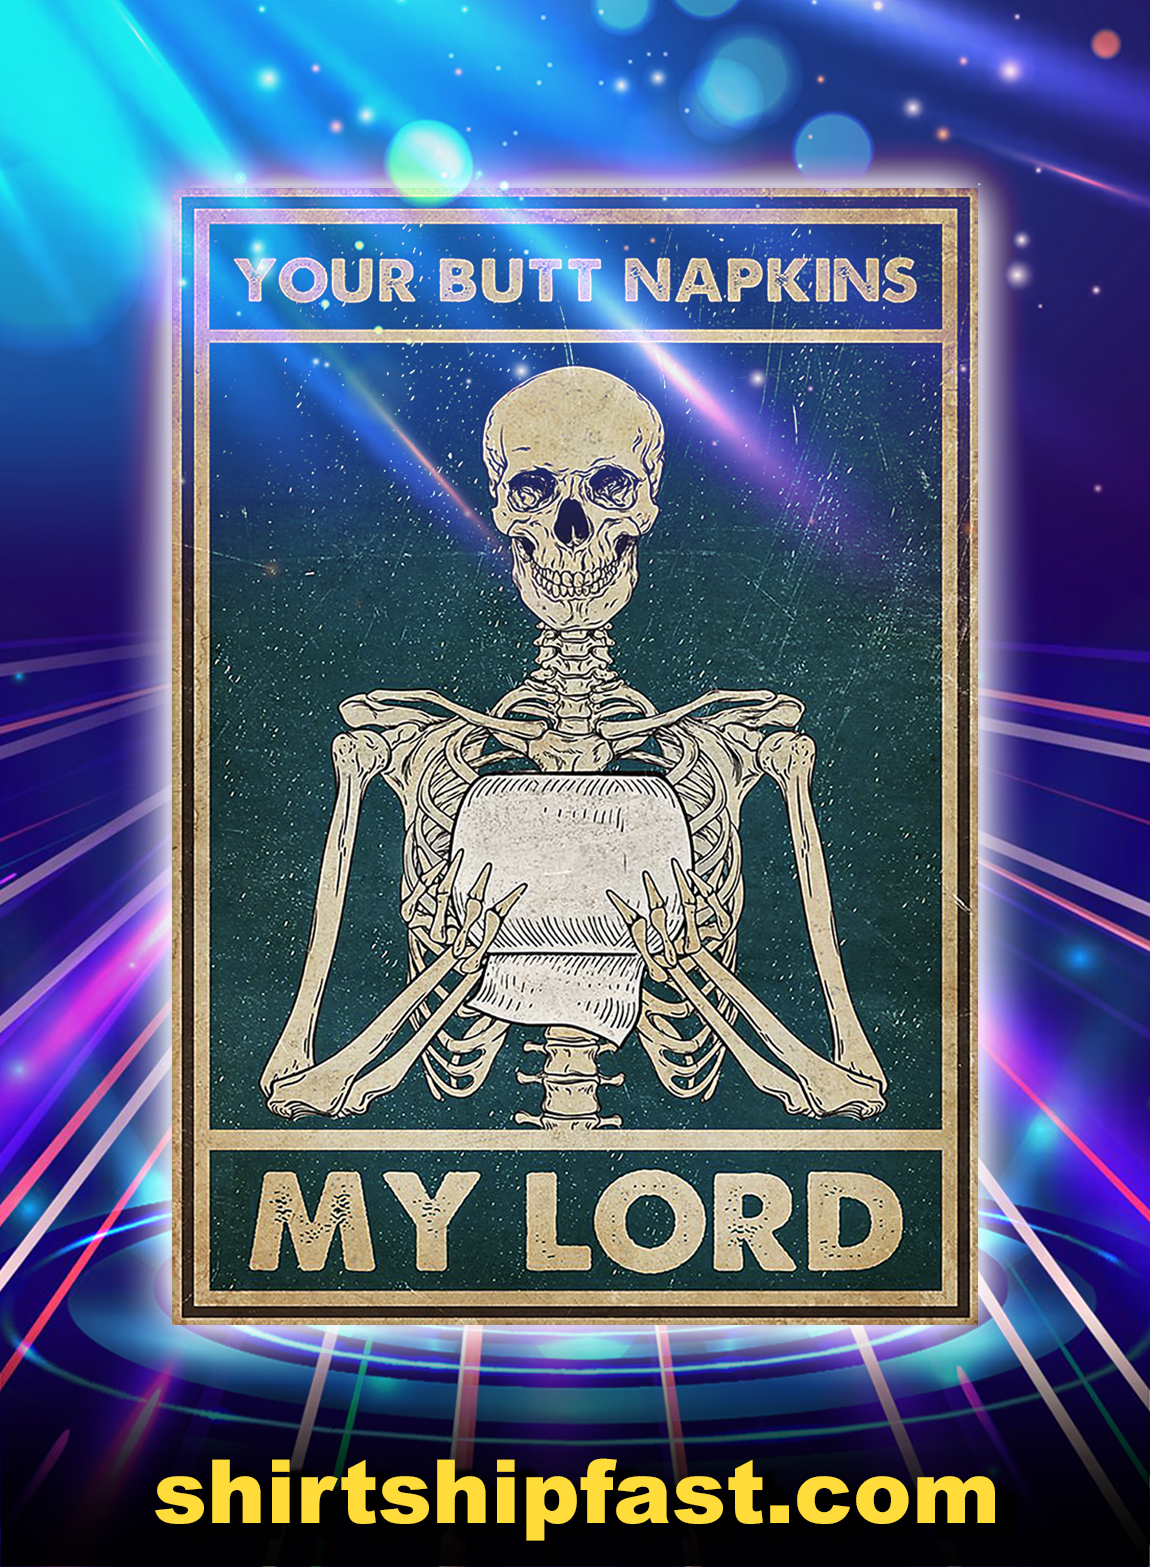 Bathroom skeleton your butt napkins my lord poster - A2